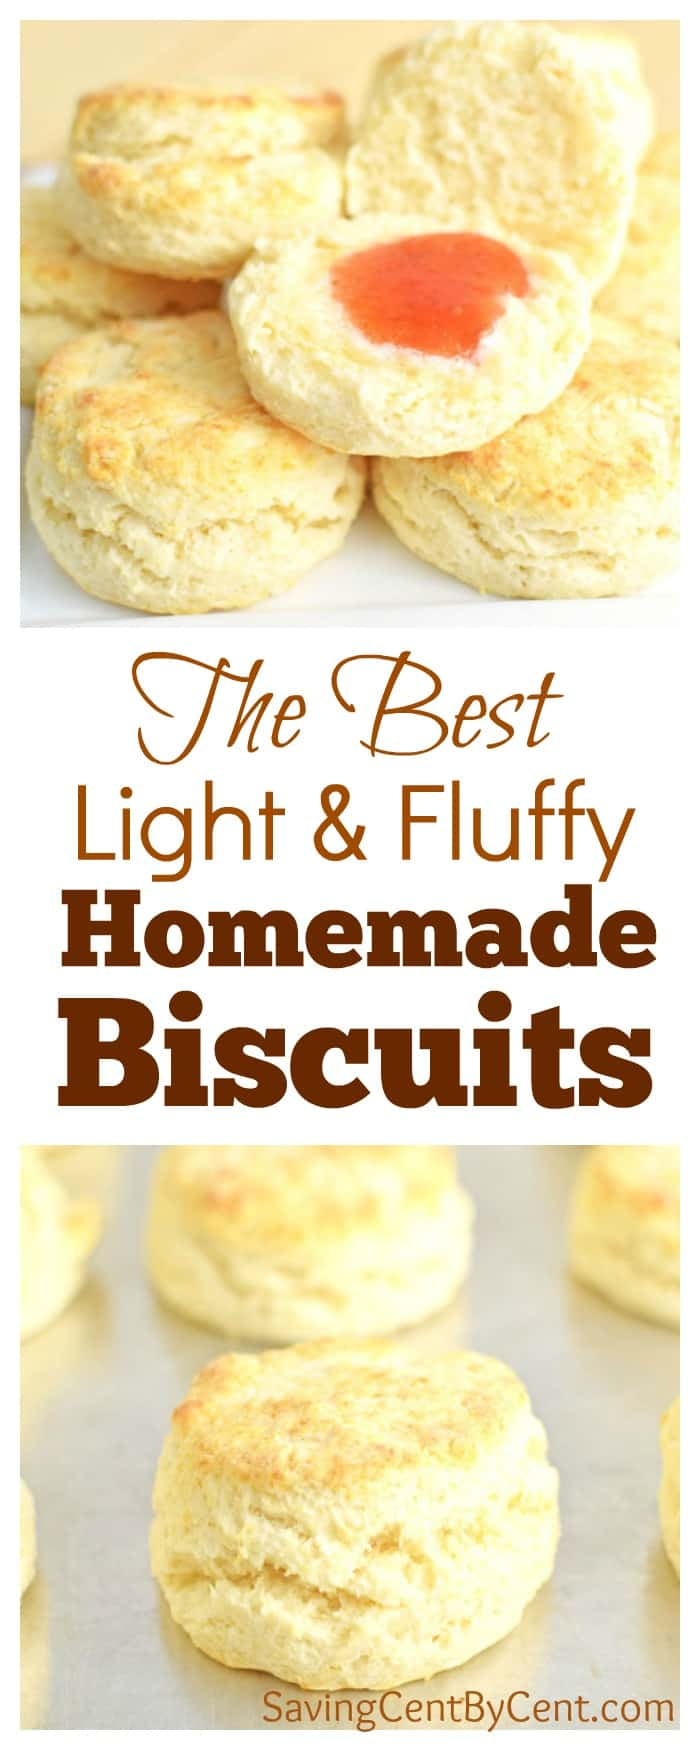 The Best Light & Fluffy Homemade Biscuits